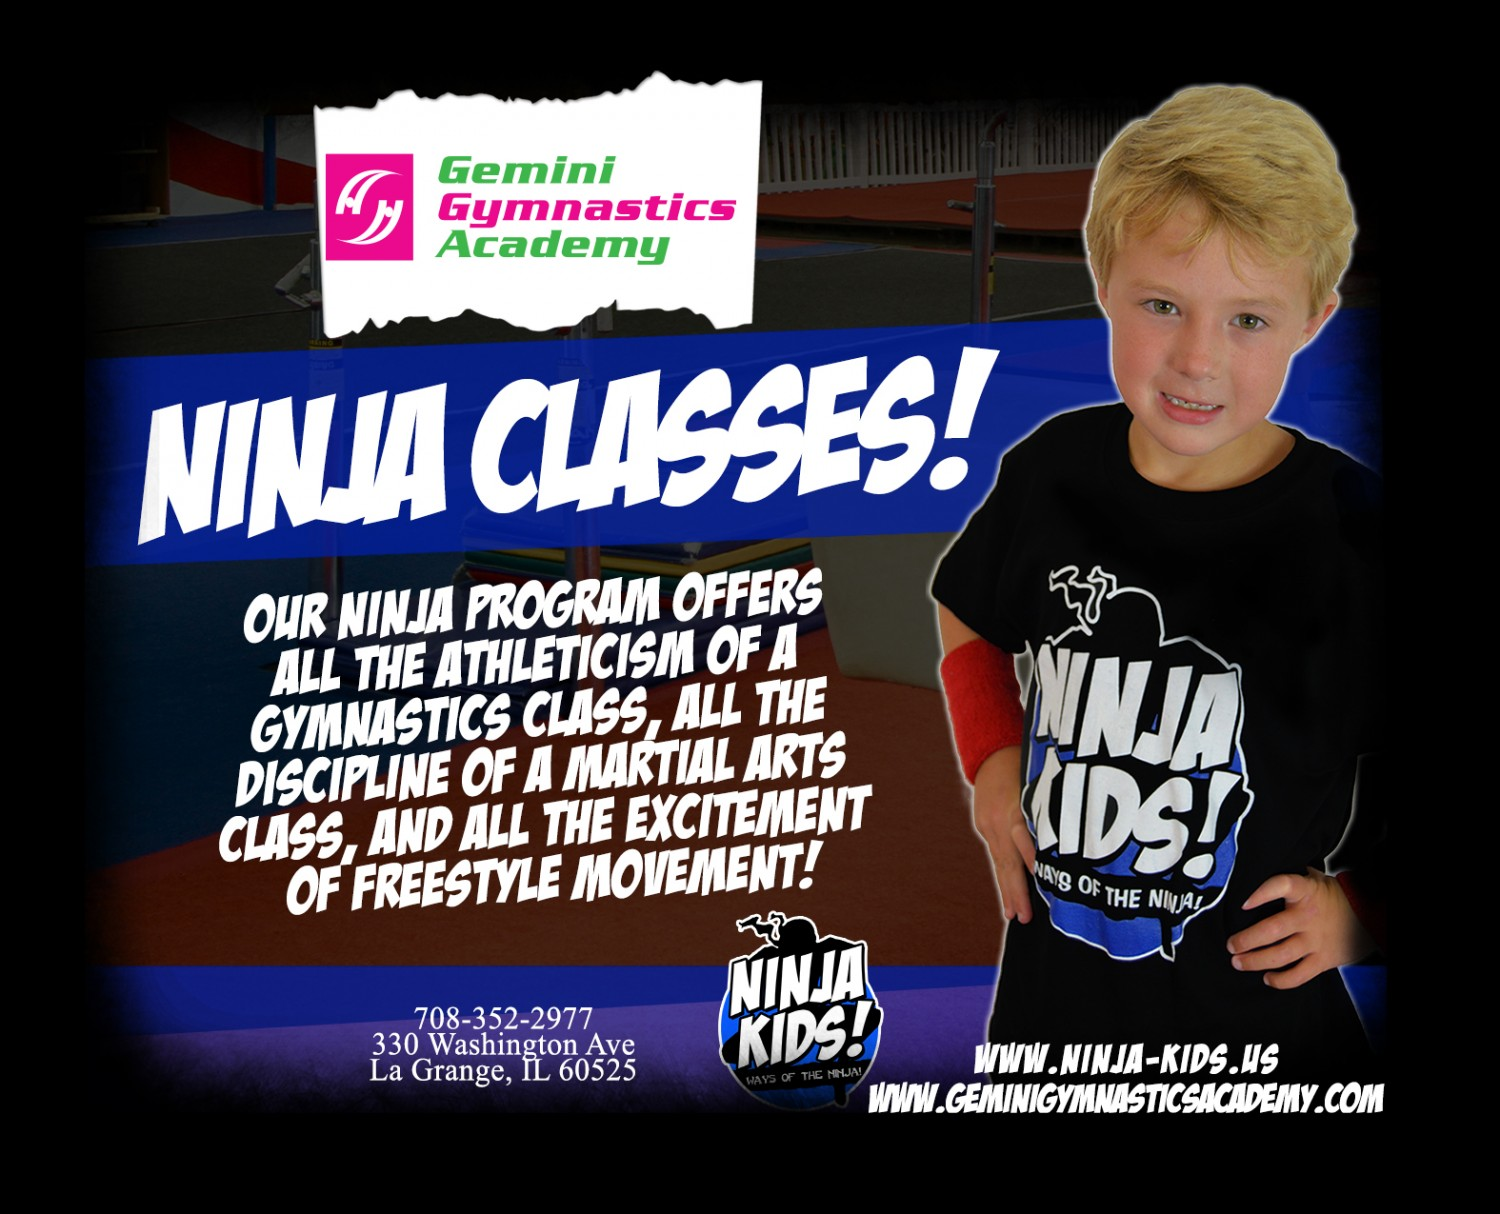 Full_Custom_-_Ninja_Kids-_Gemini